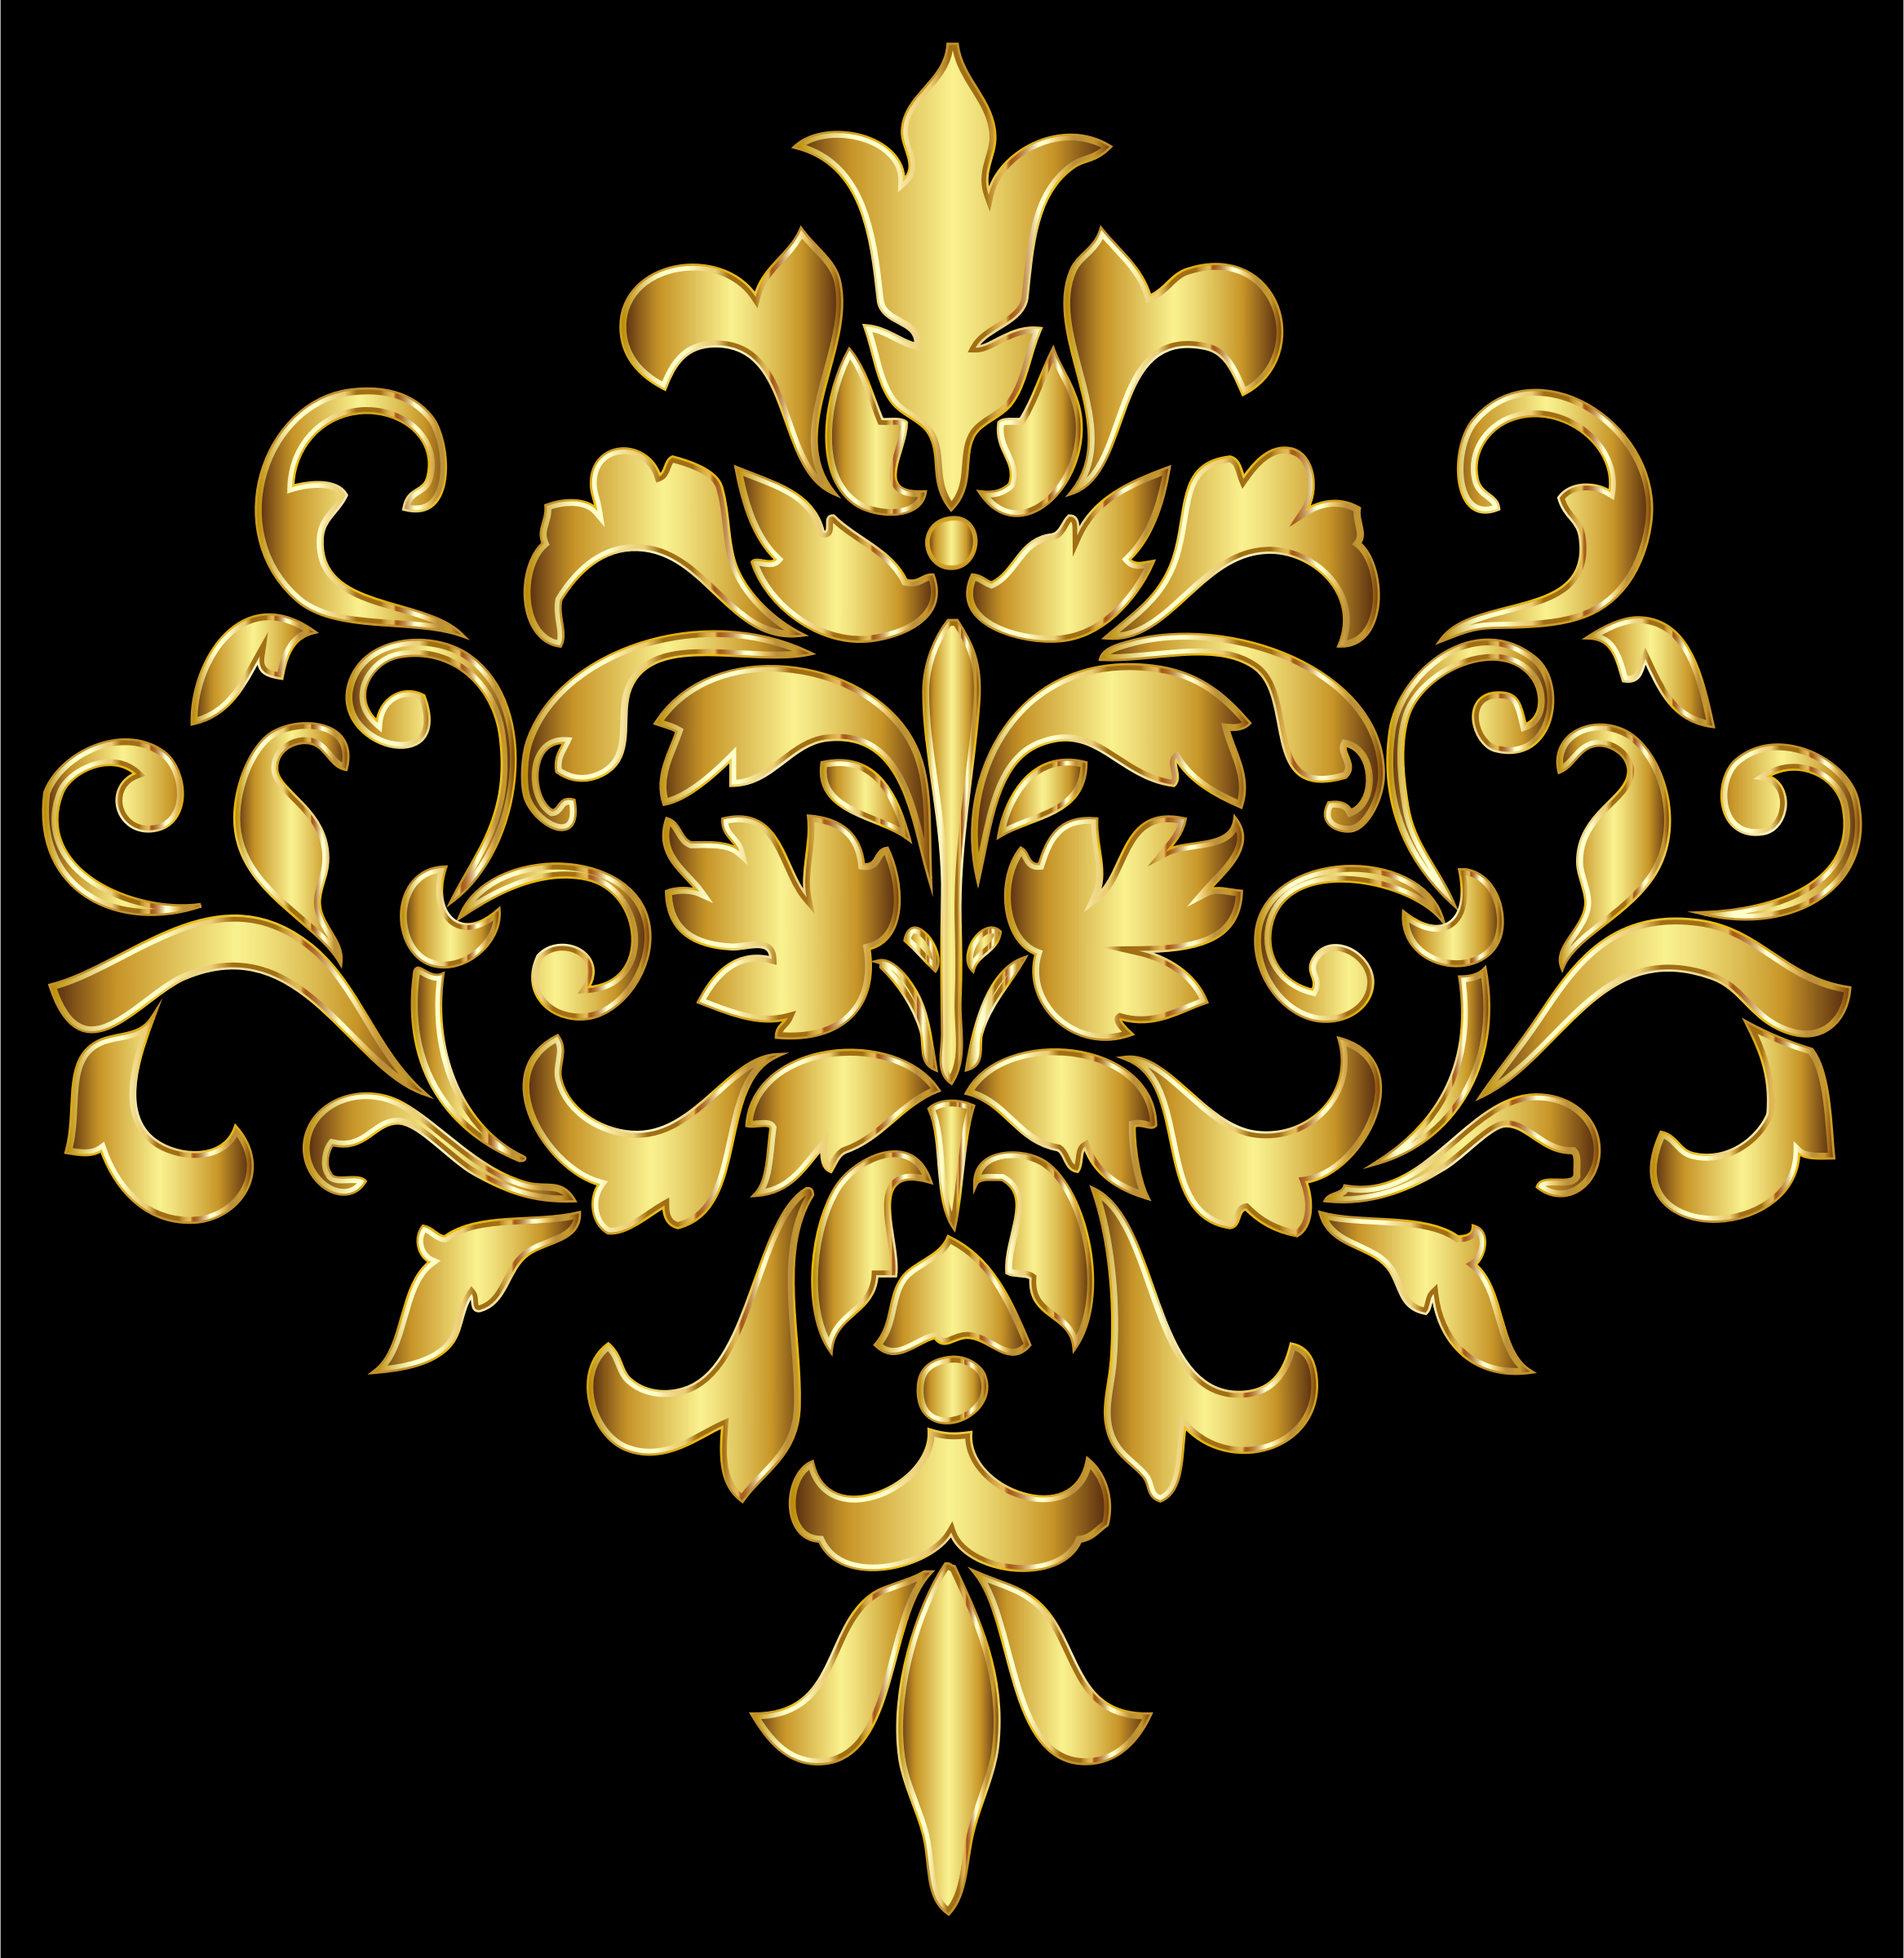 Gold Damask Design by GDJ